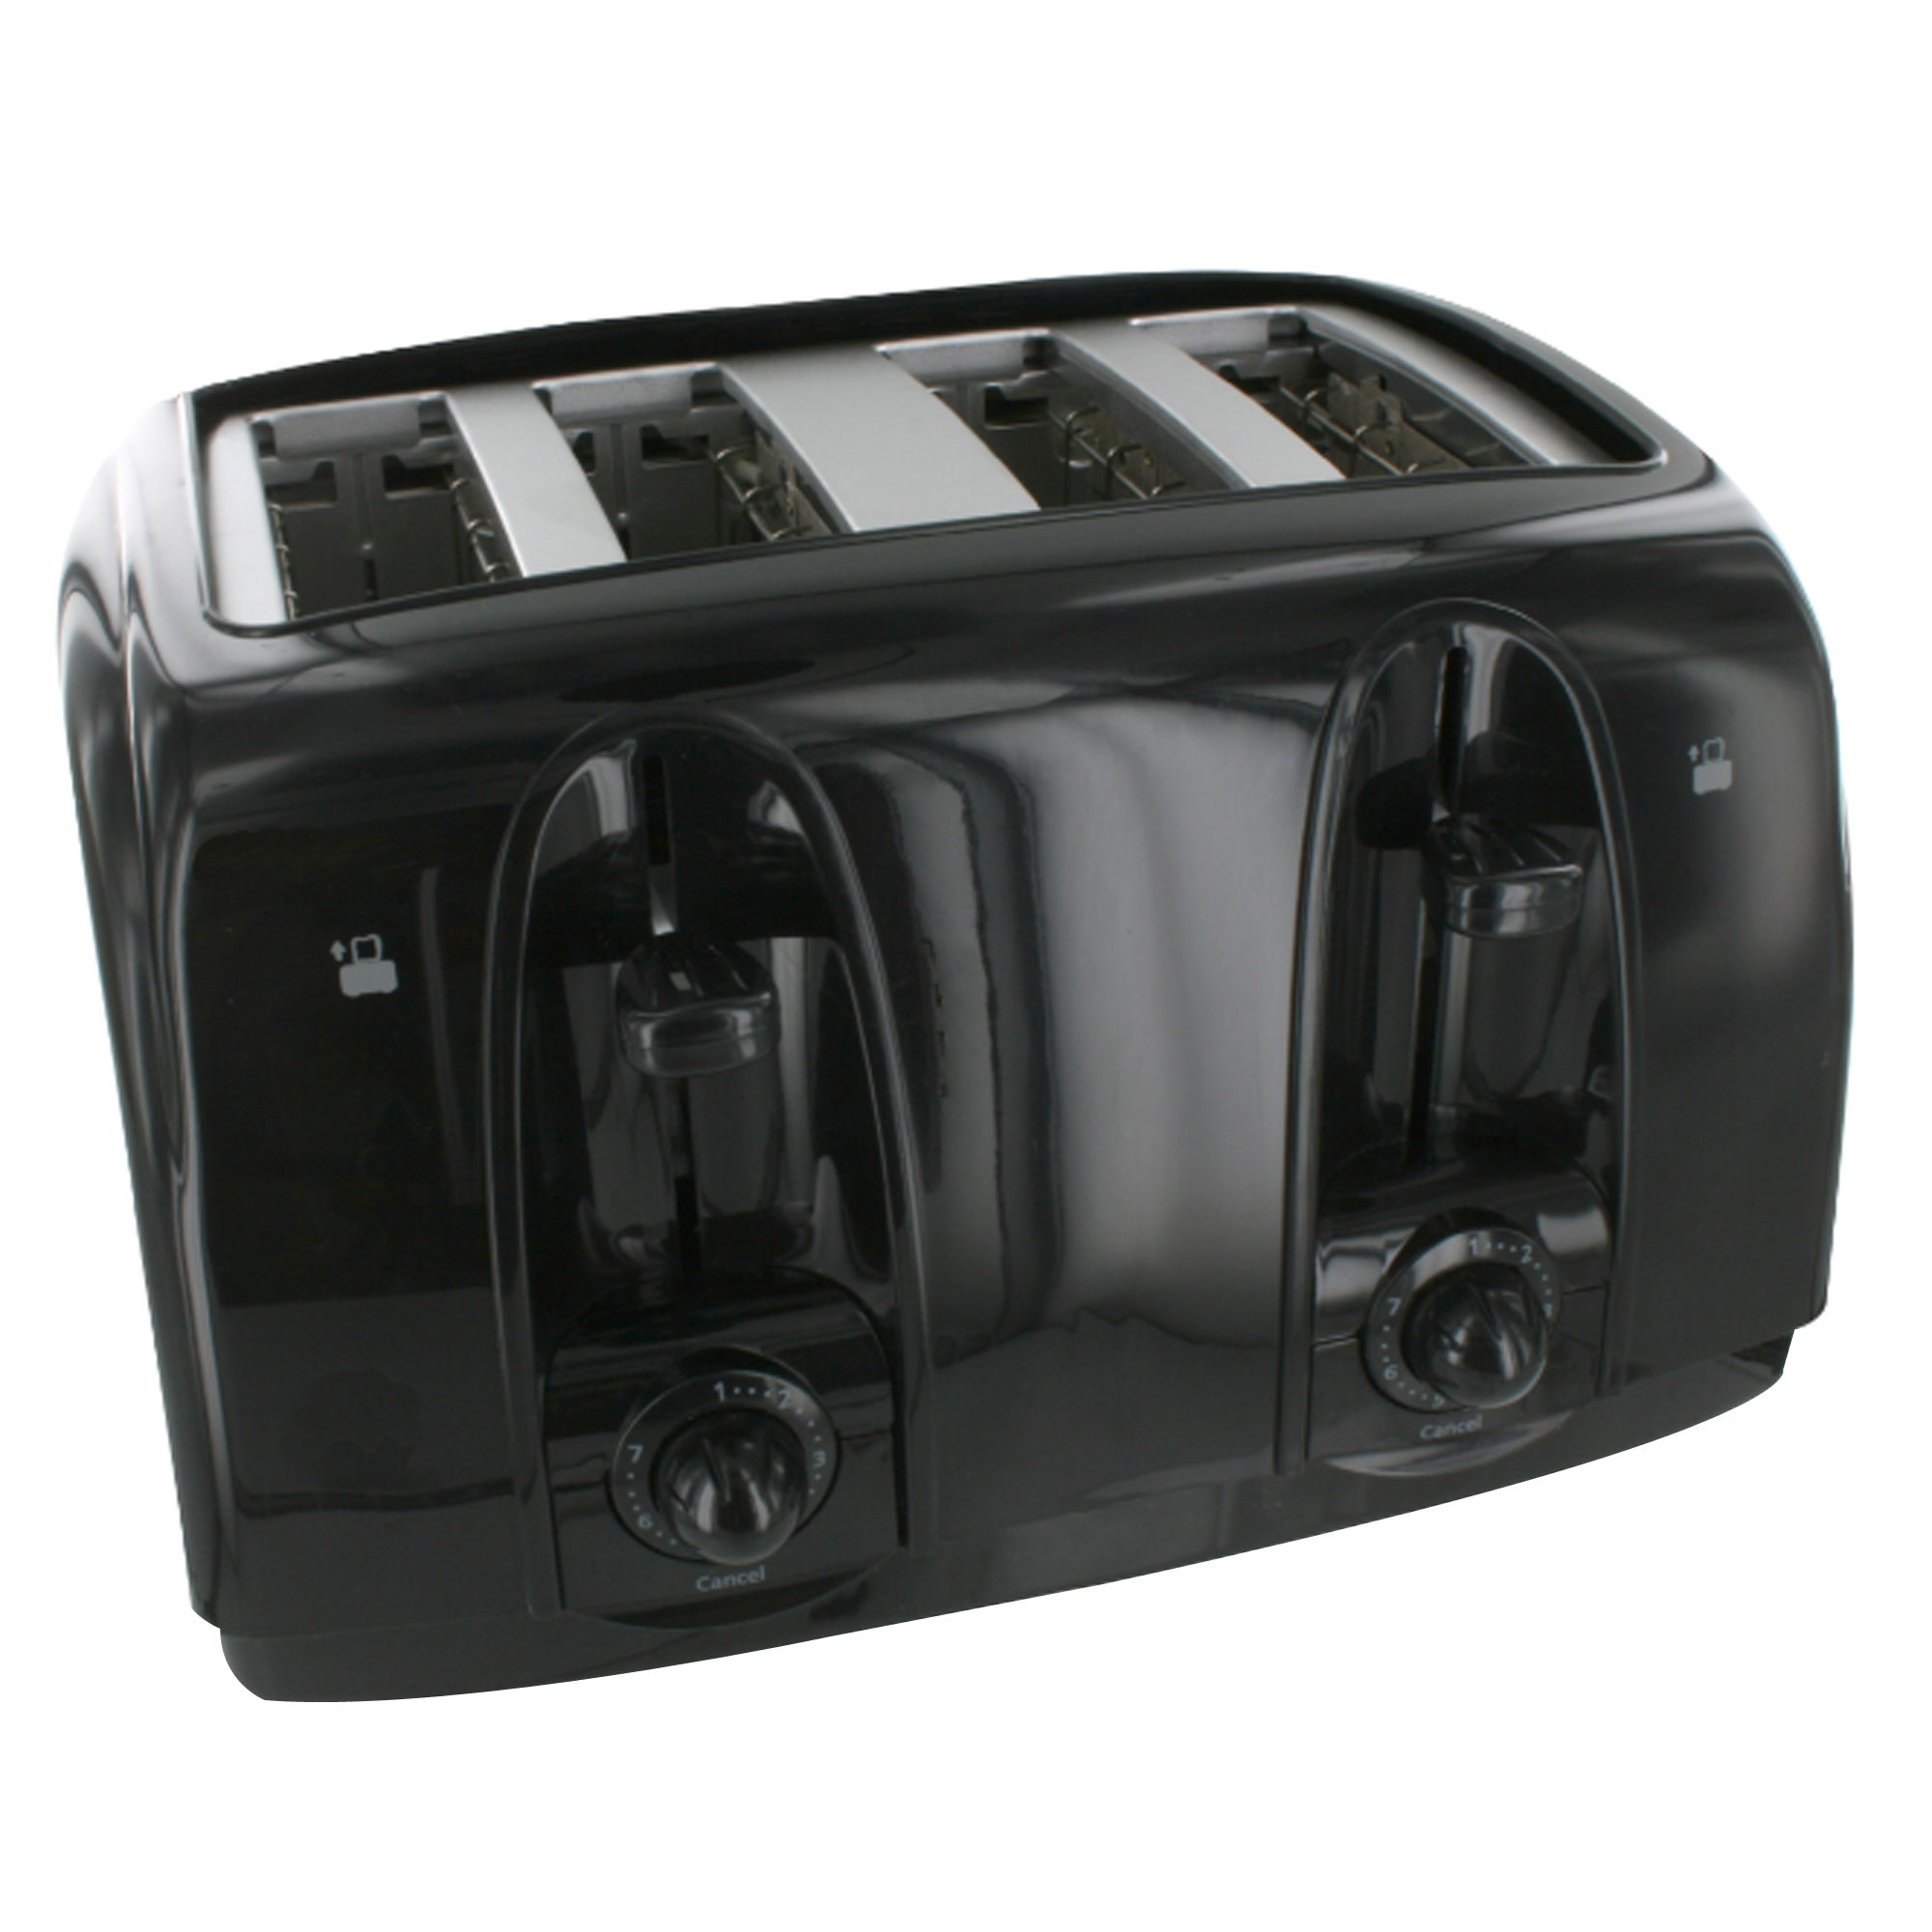 Simply Black 4 Slice Toaster